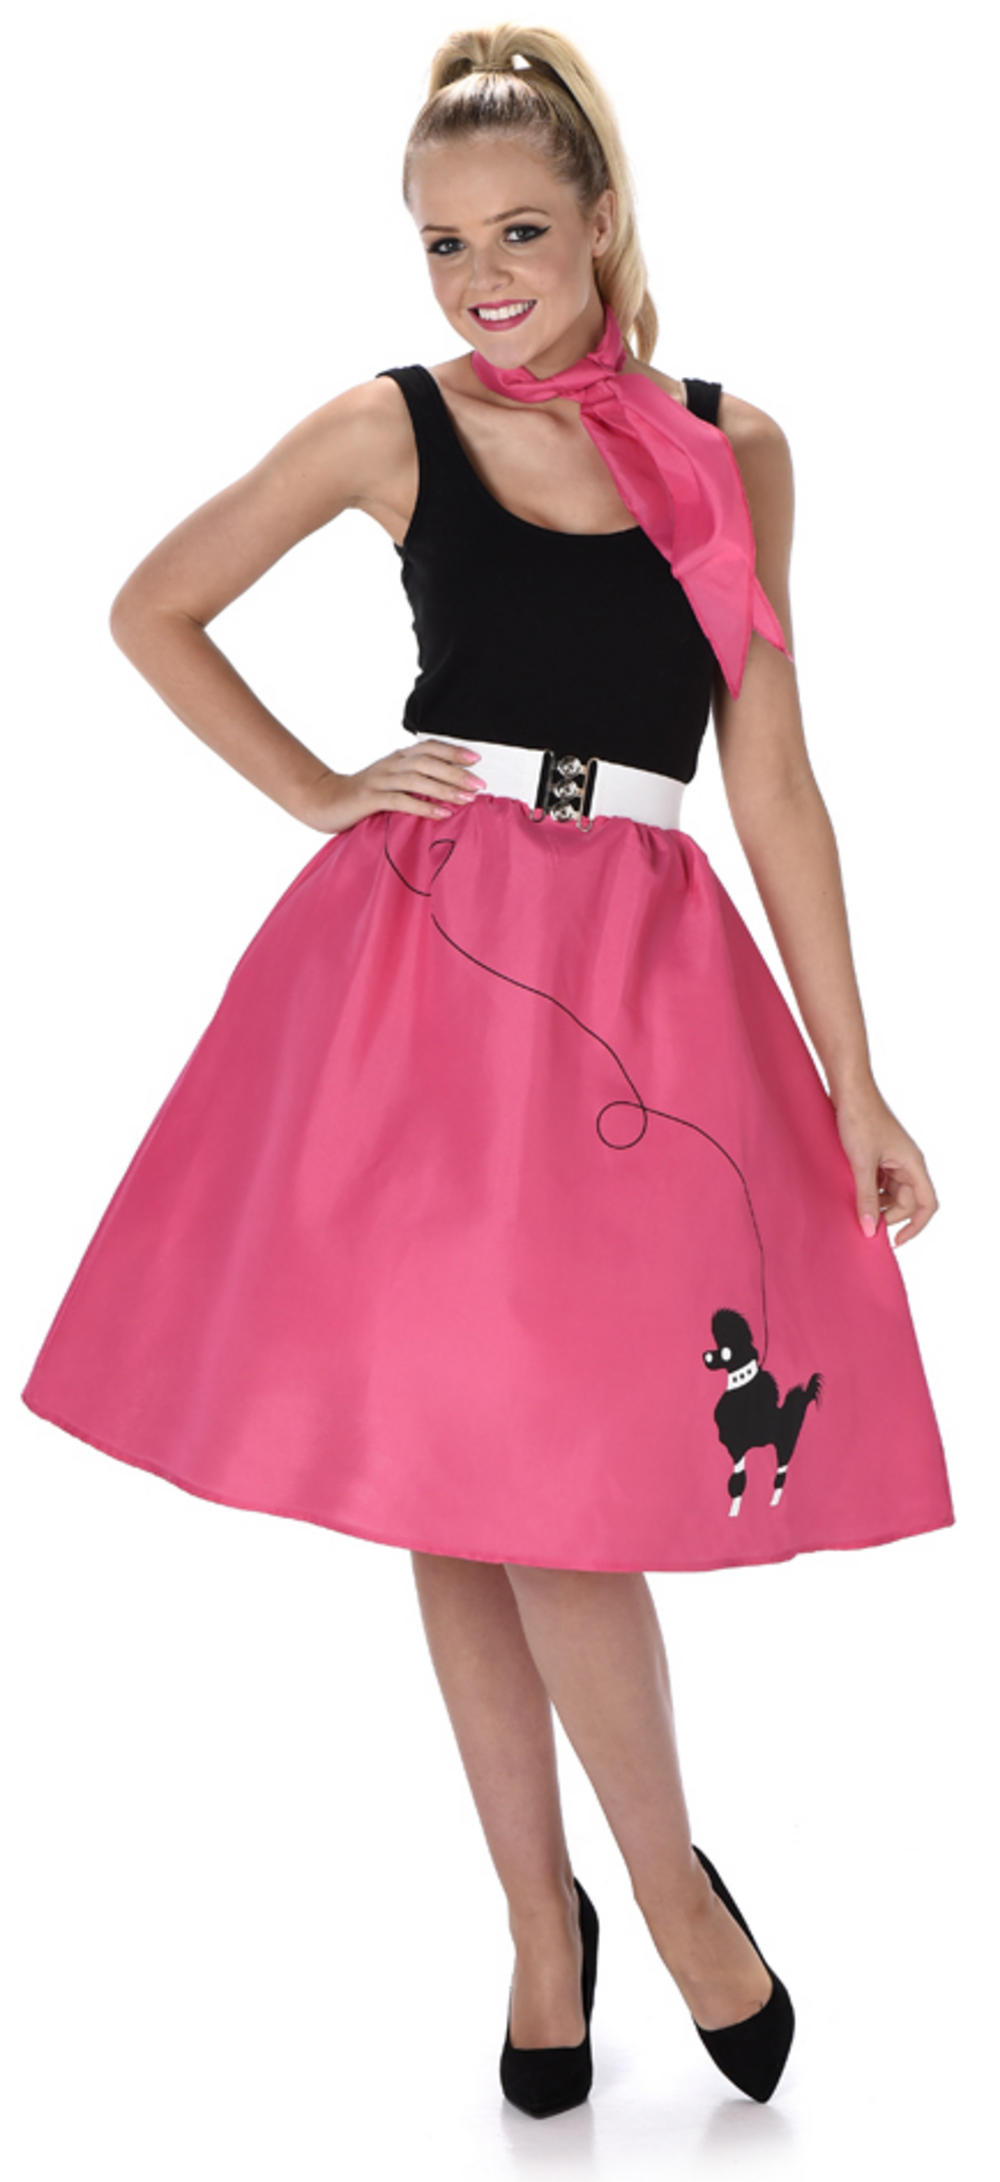 Dark Pink Poodle Skirt Ladies Costume